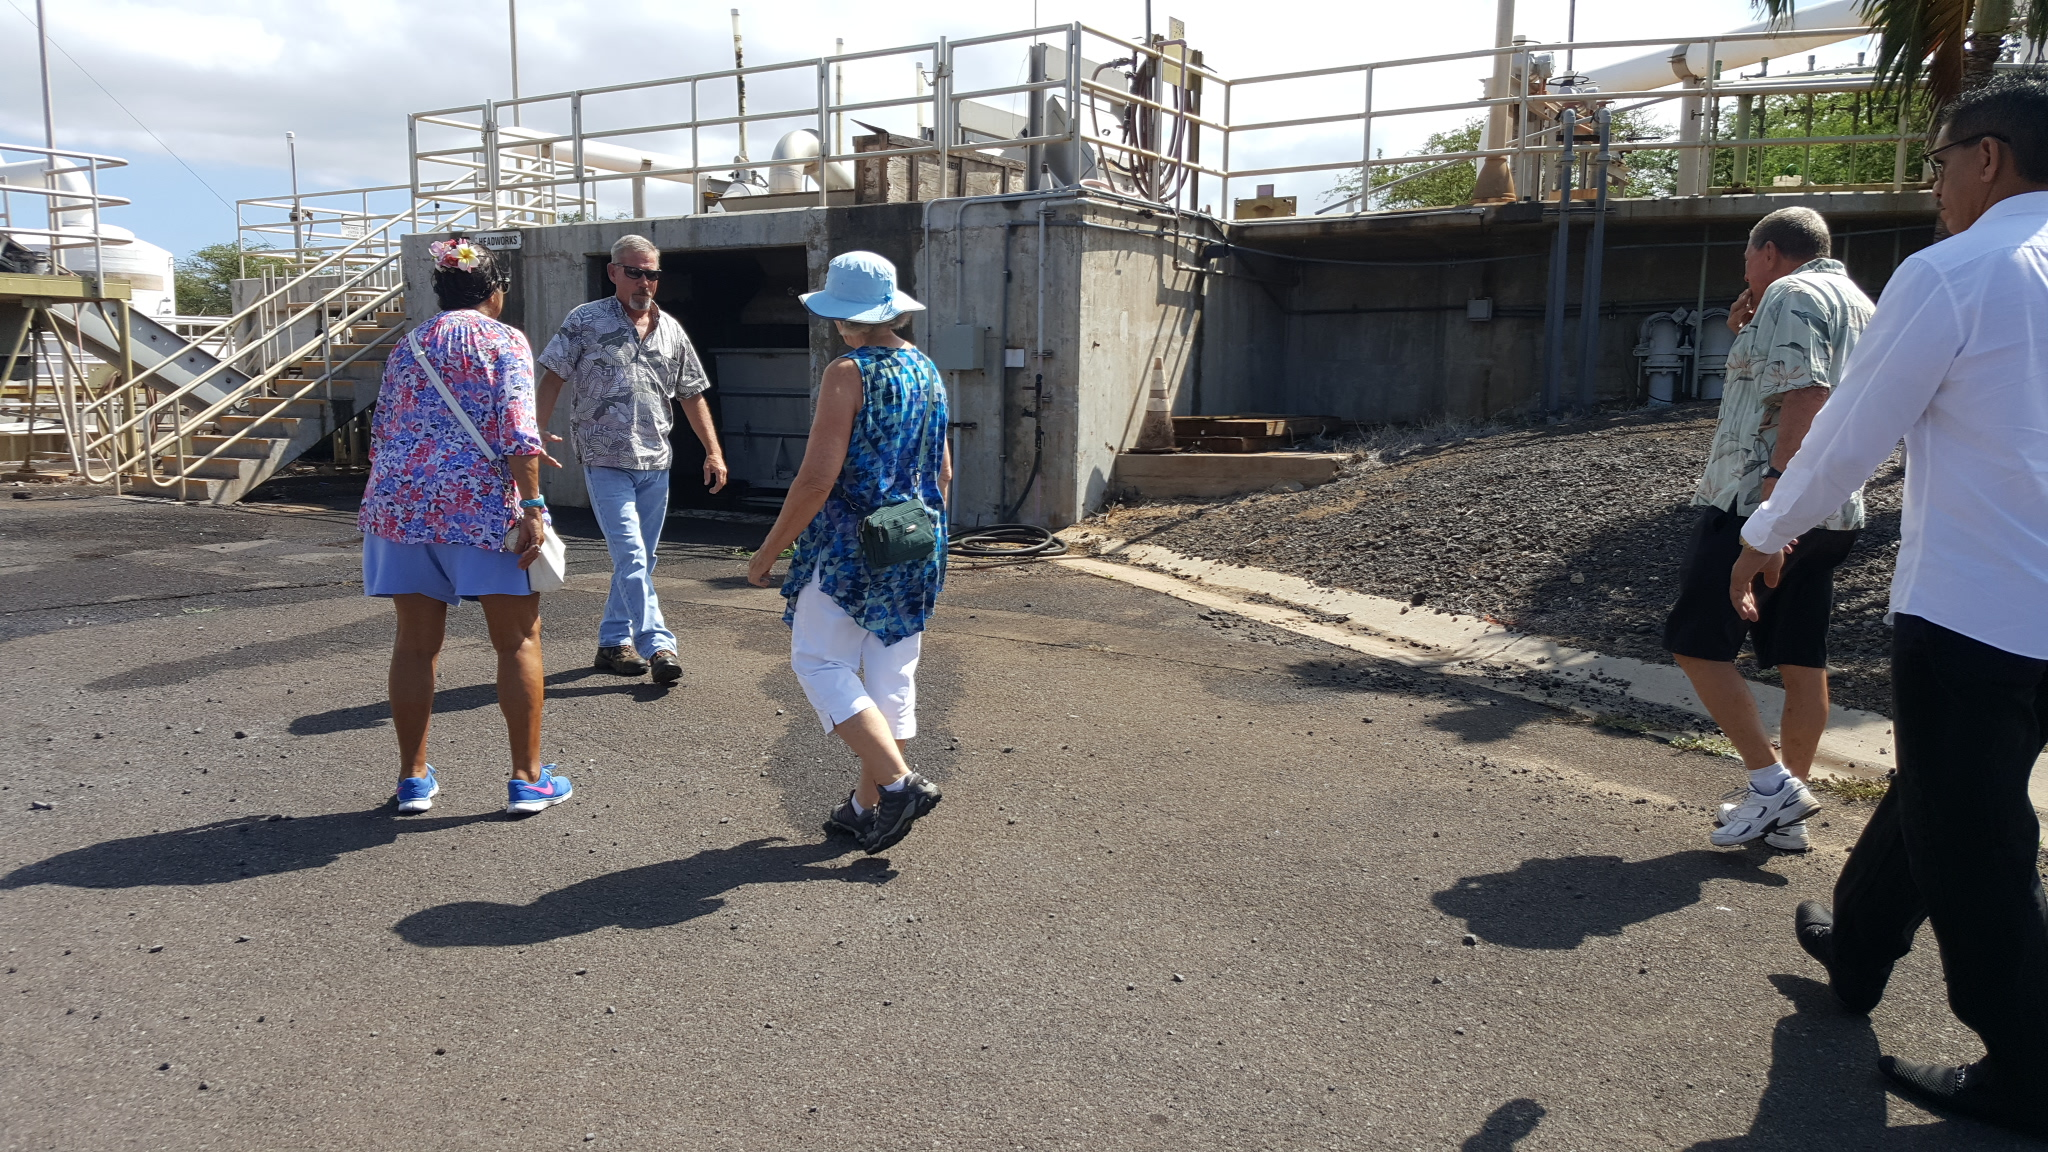 A Visit to the Kihei Wastewater Treatment Plant